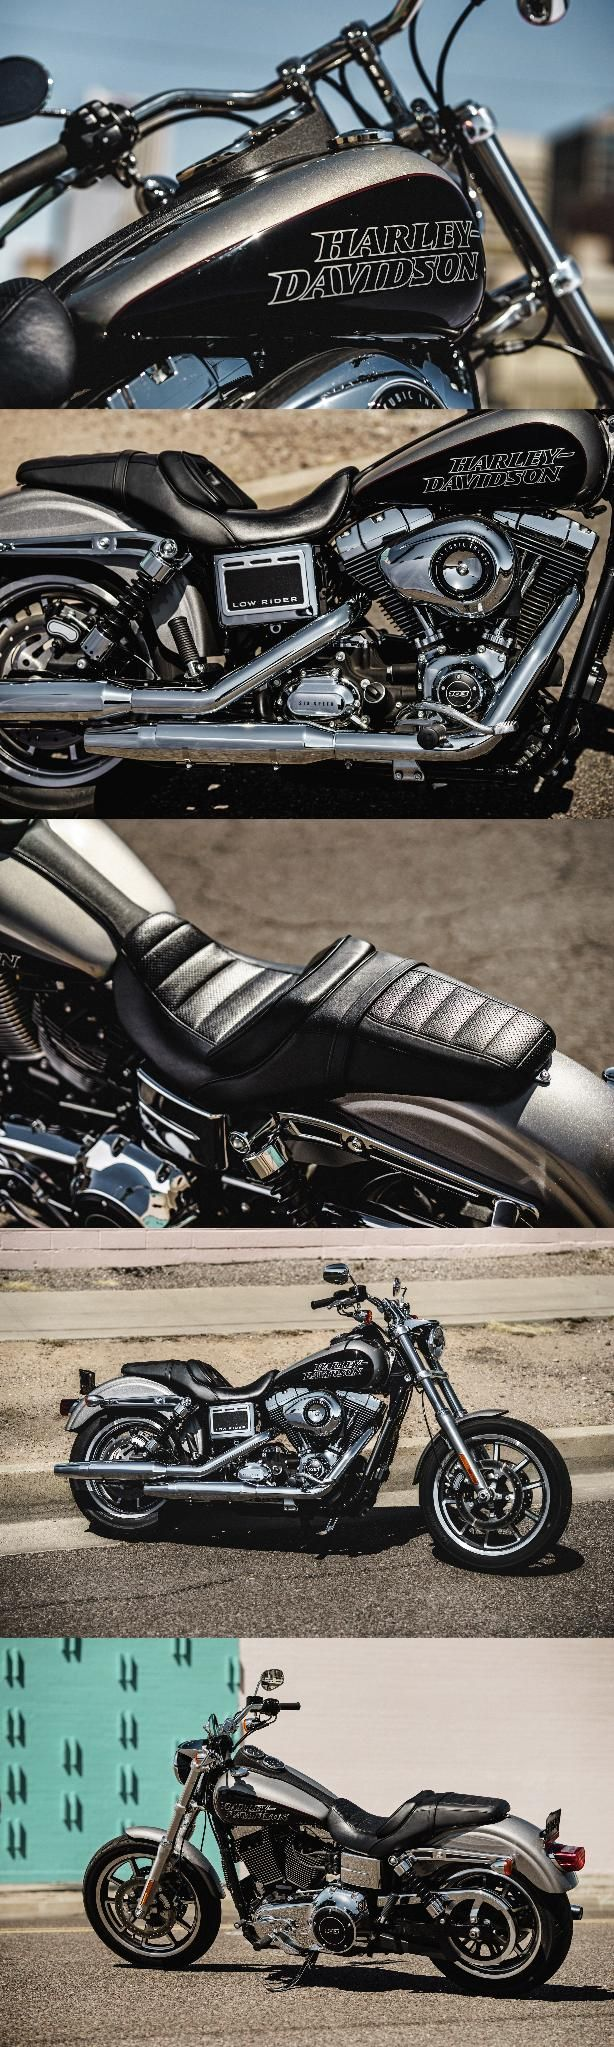 The harley davidson low rider motorcycle is back with a vengeance easy riding